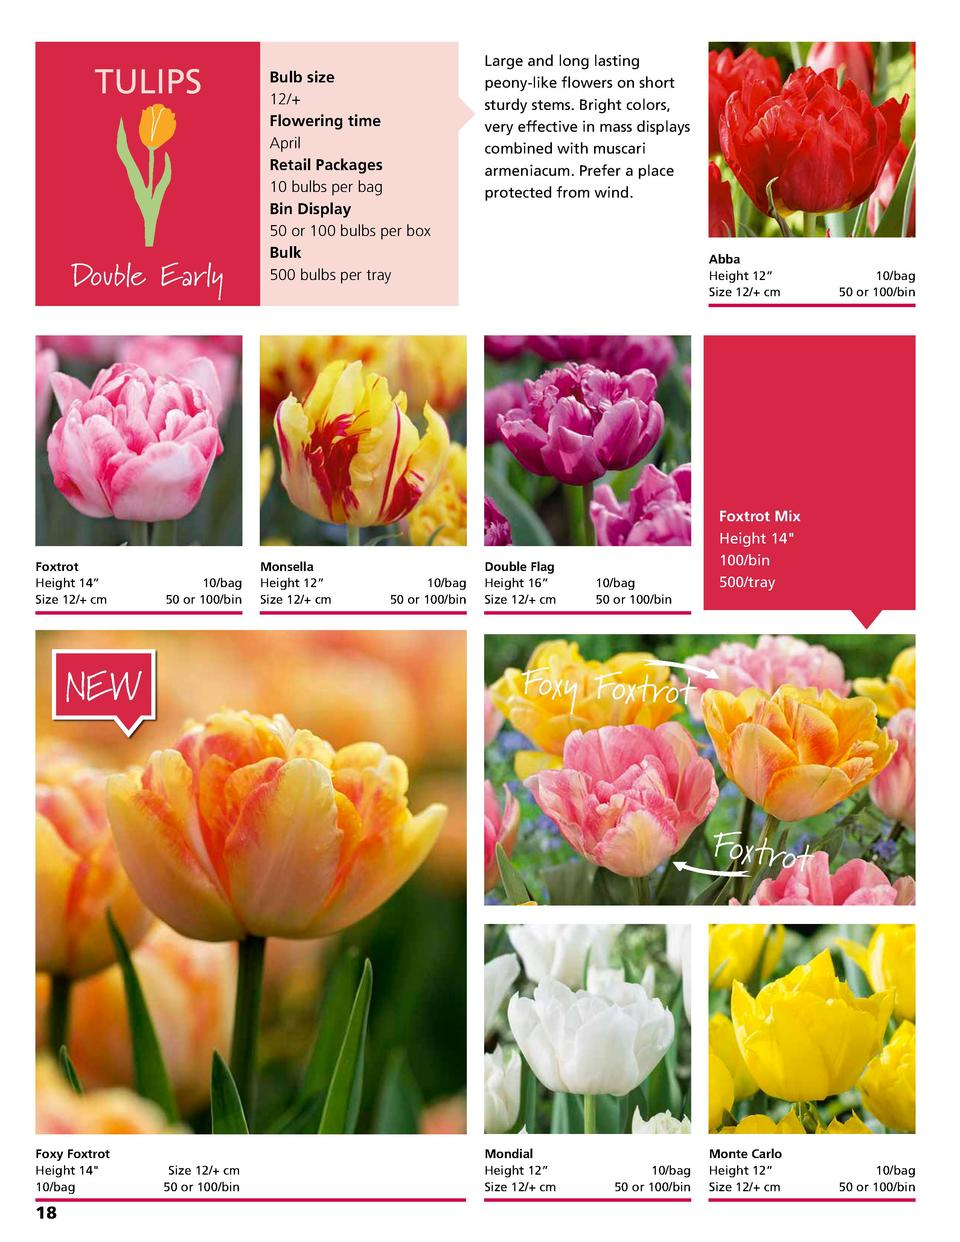 TULIPS  Double Early  Foxtrot Height 14      Size 12   cm    10 bag 50 or 100 bin  Bulb size 12   Flowering time April Ret...